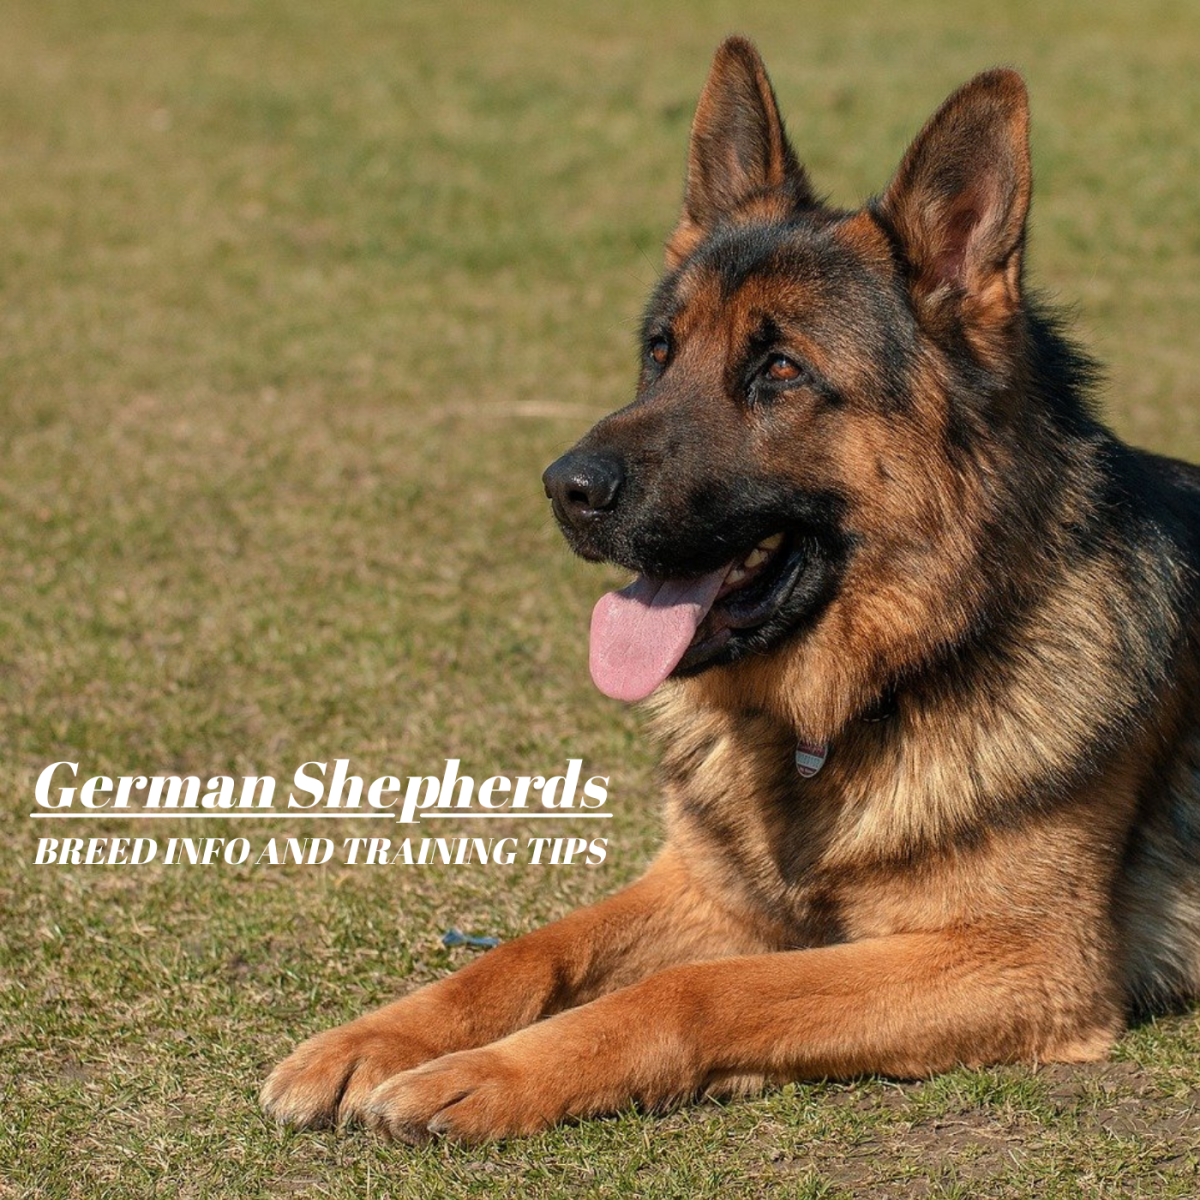 German Shepherds are intelligent, loyal, and highly trainable if worked with carefully.